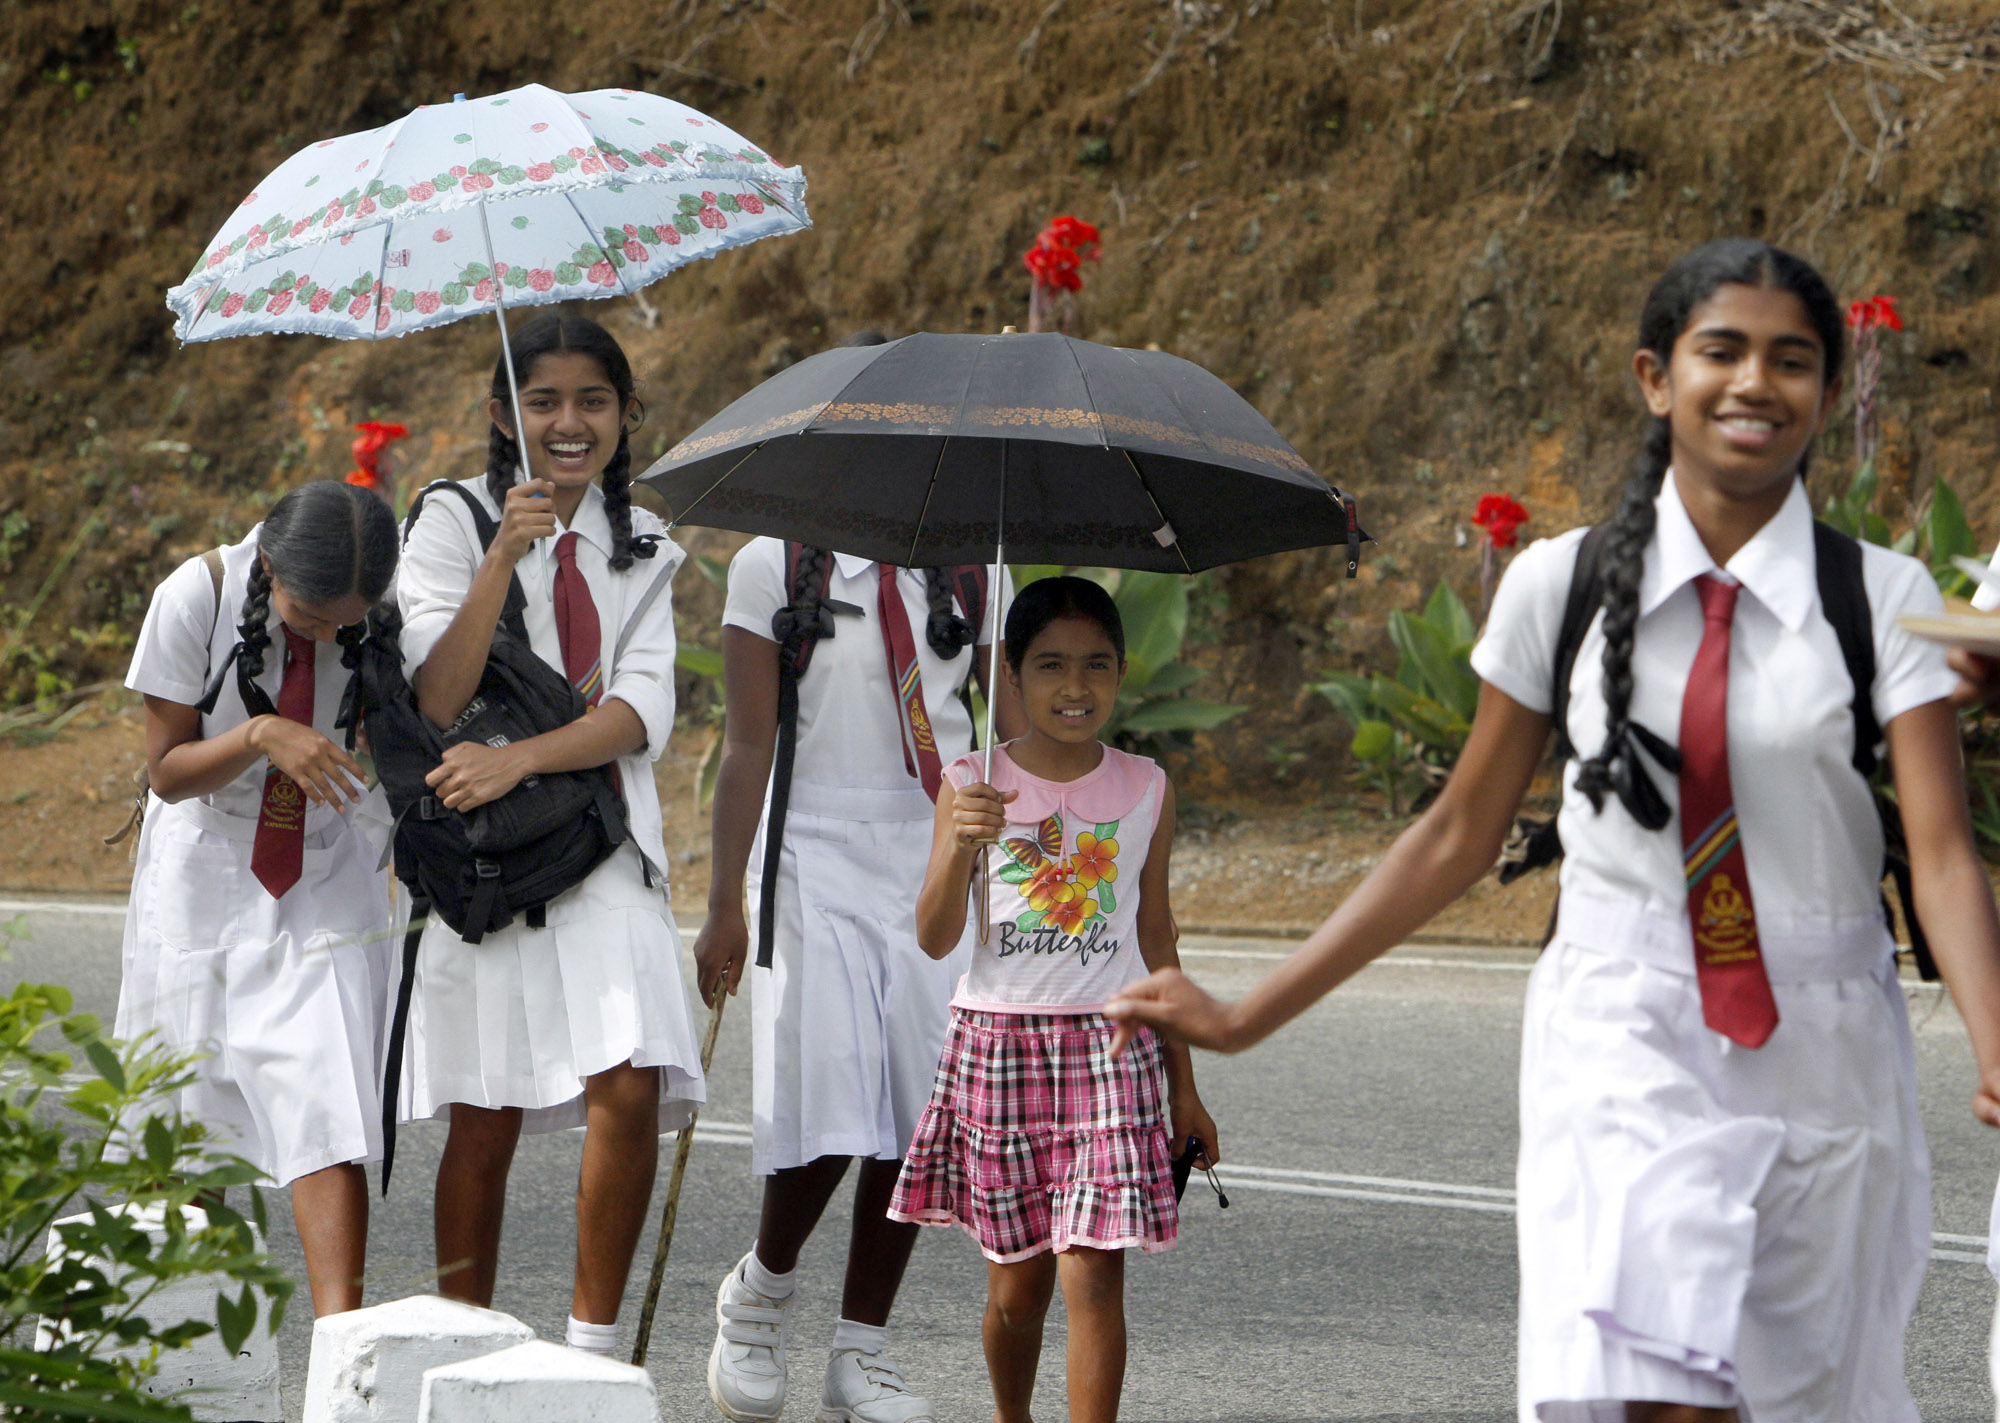 Sri Lanka Schoolkinderen Uniforms Paraplus